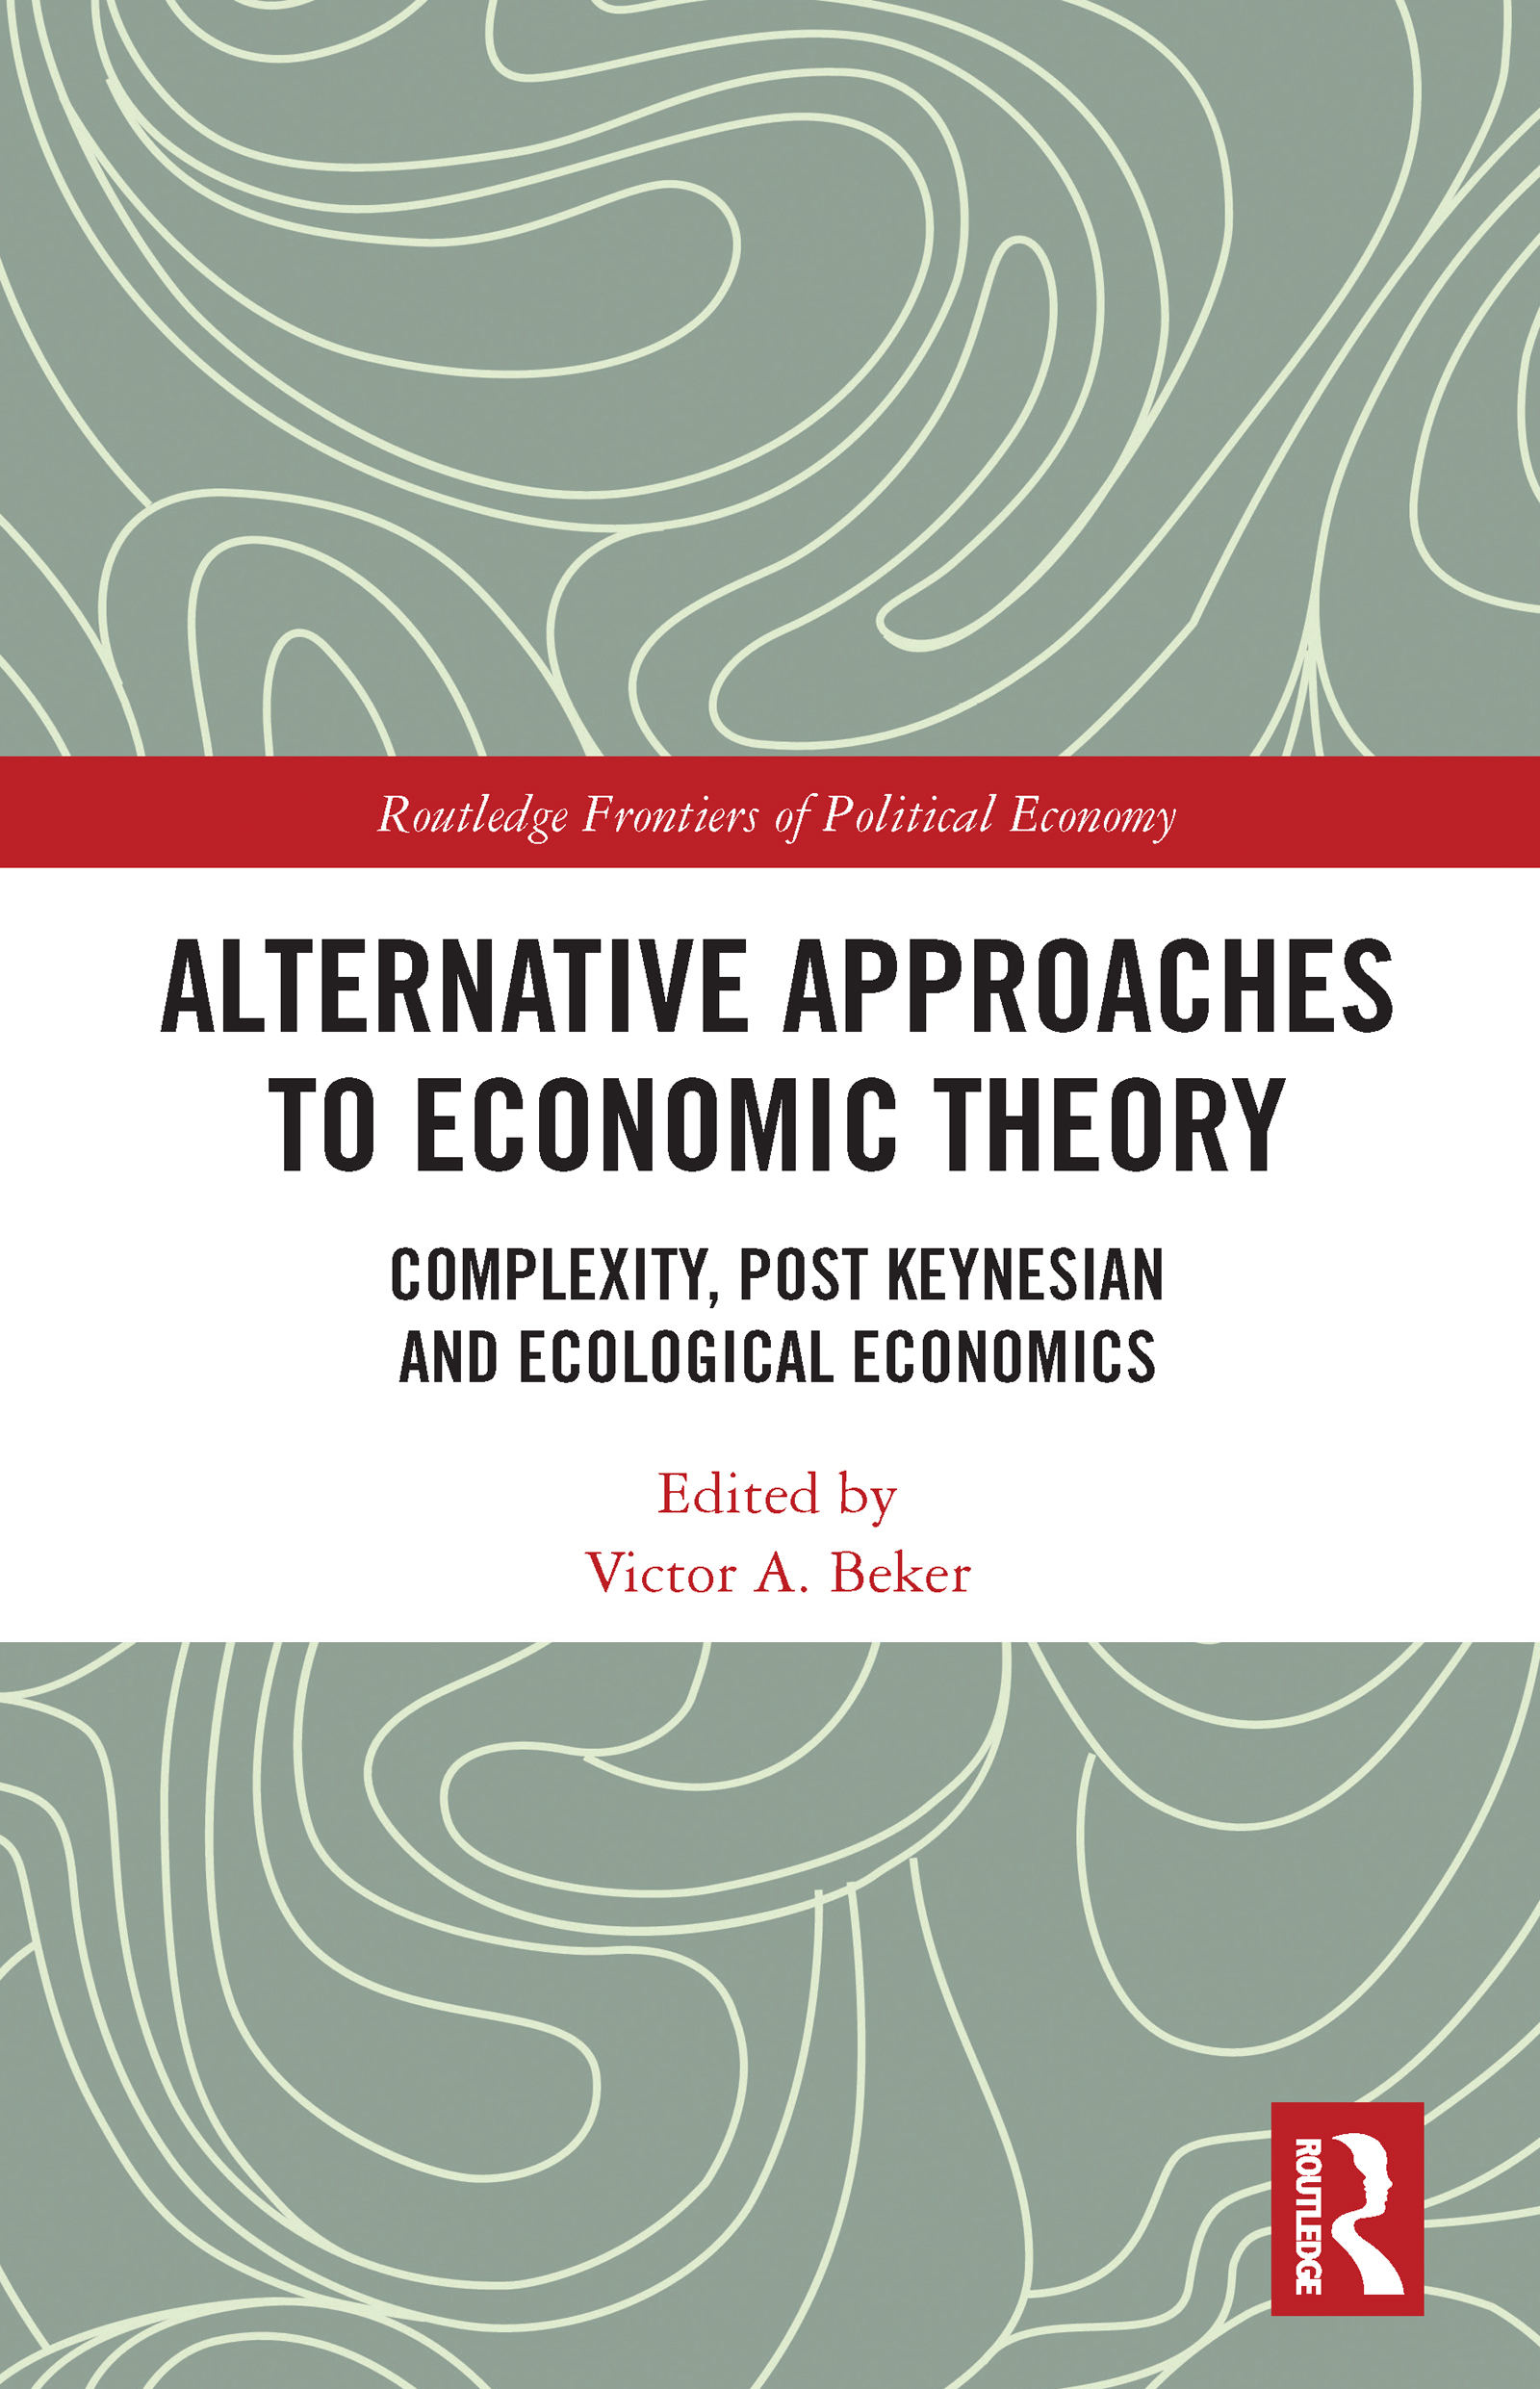 Alternative Approaches to Economic Theory